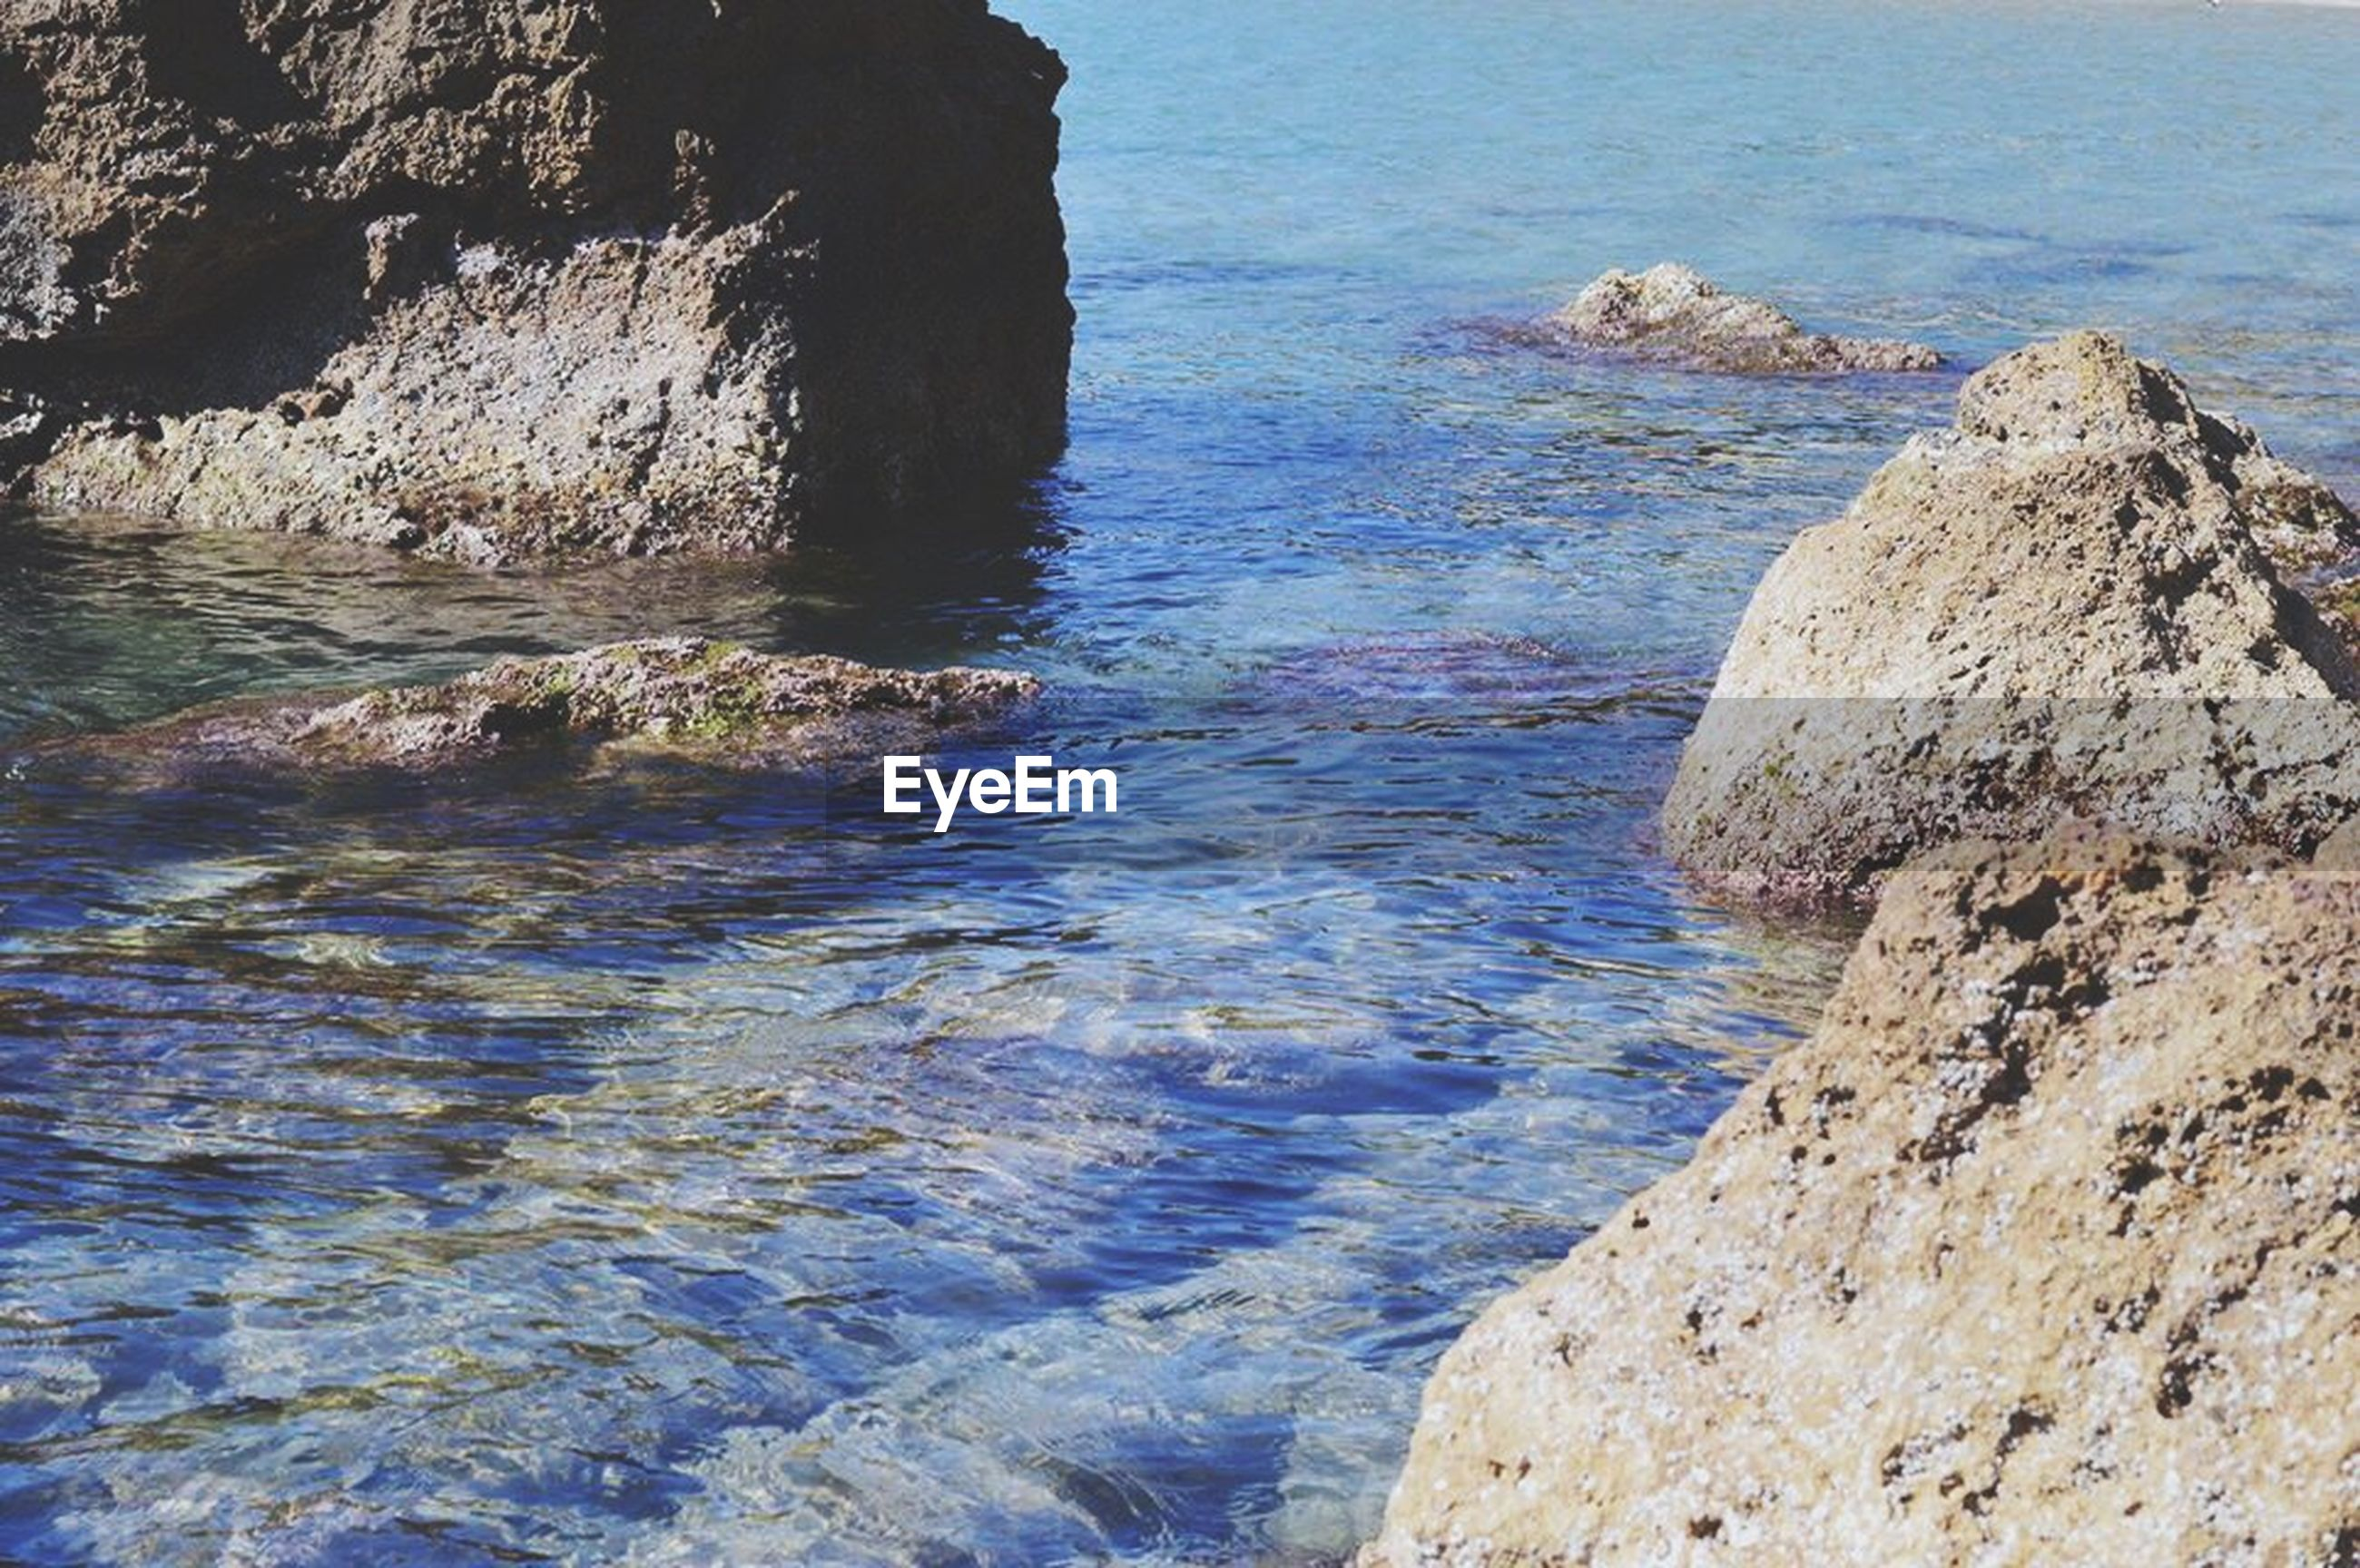 water, sea, rock - object, rock formation, beauty in nature, scenics, tranquility, tranquil scene, nature, rock, blue, cliff, high angle view, idyllic, day, horizon over water, sunlight, shore, rippled, outdoors